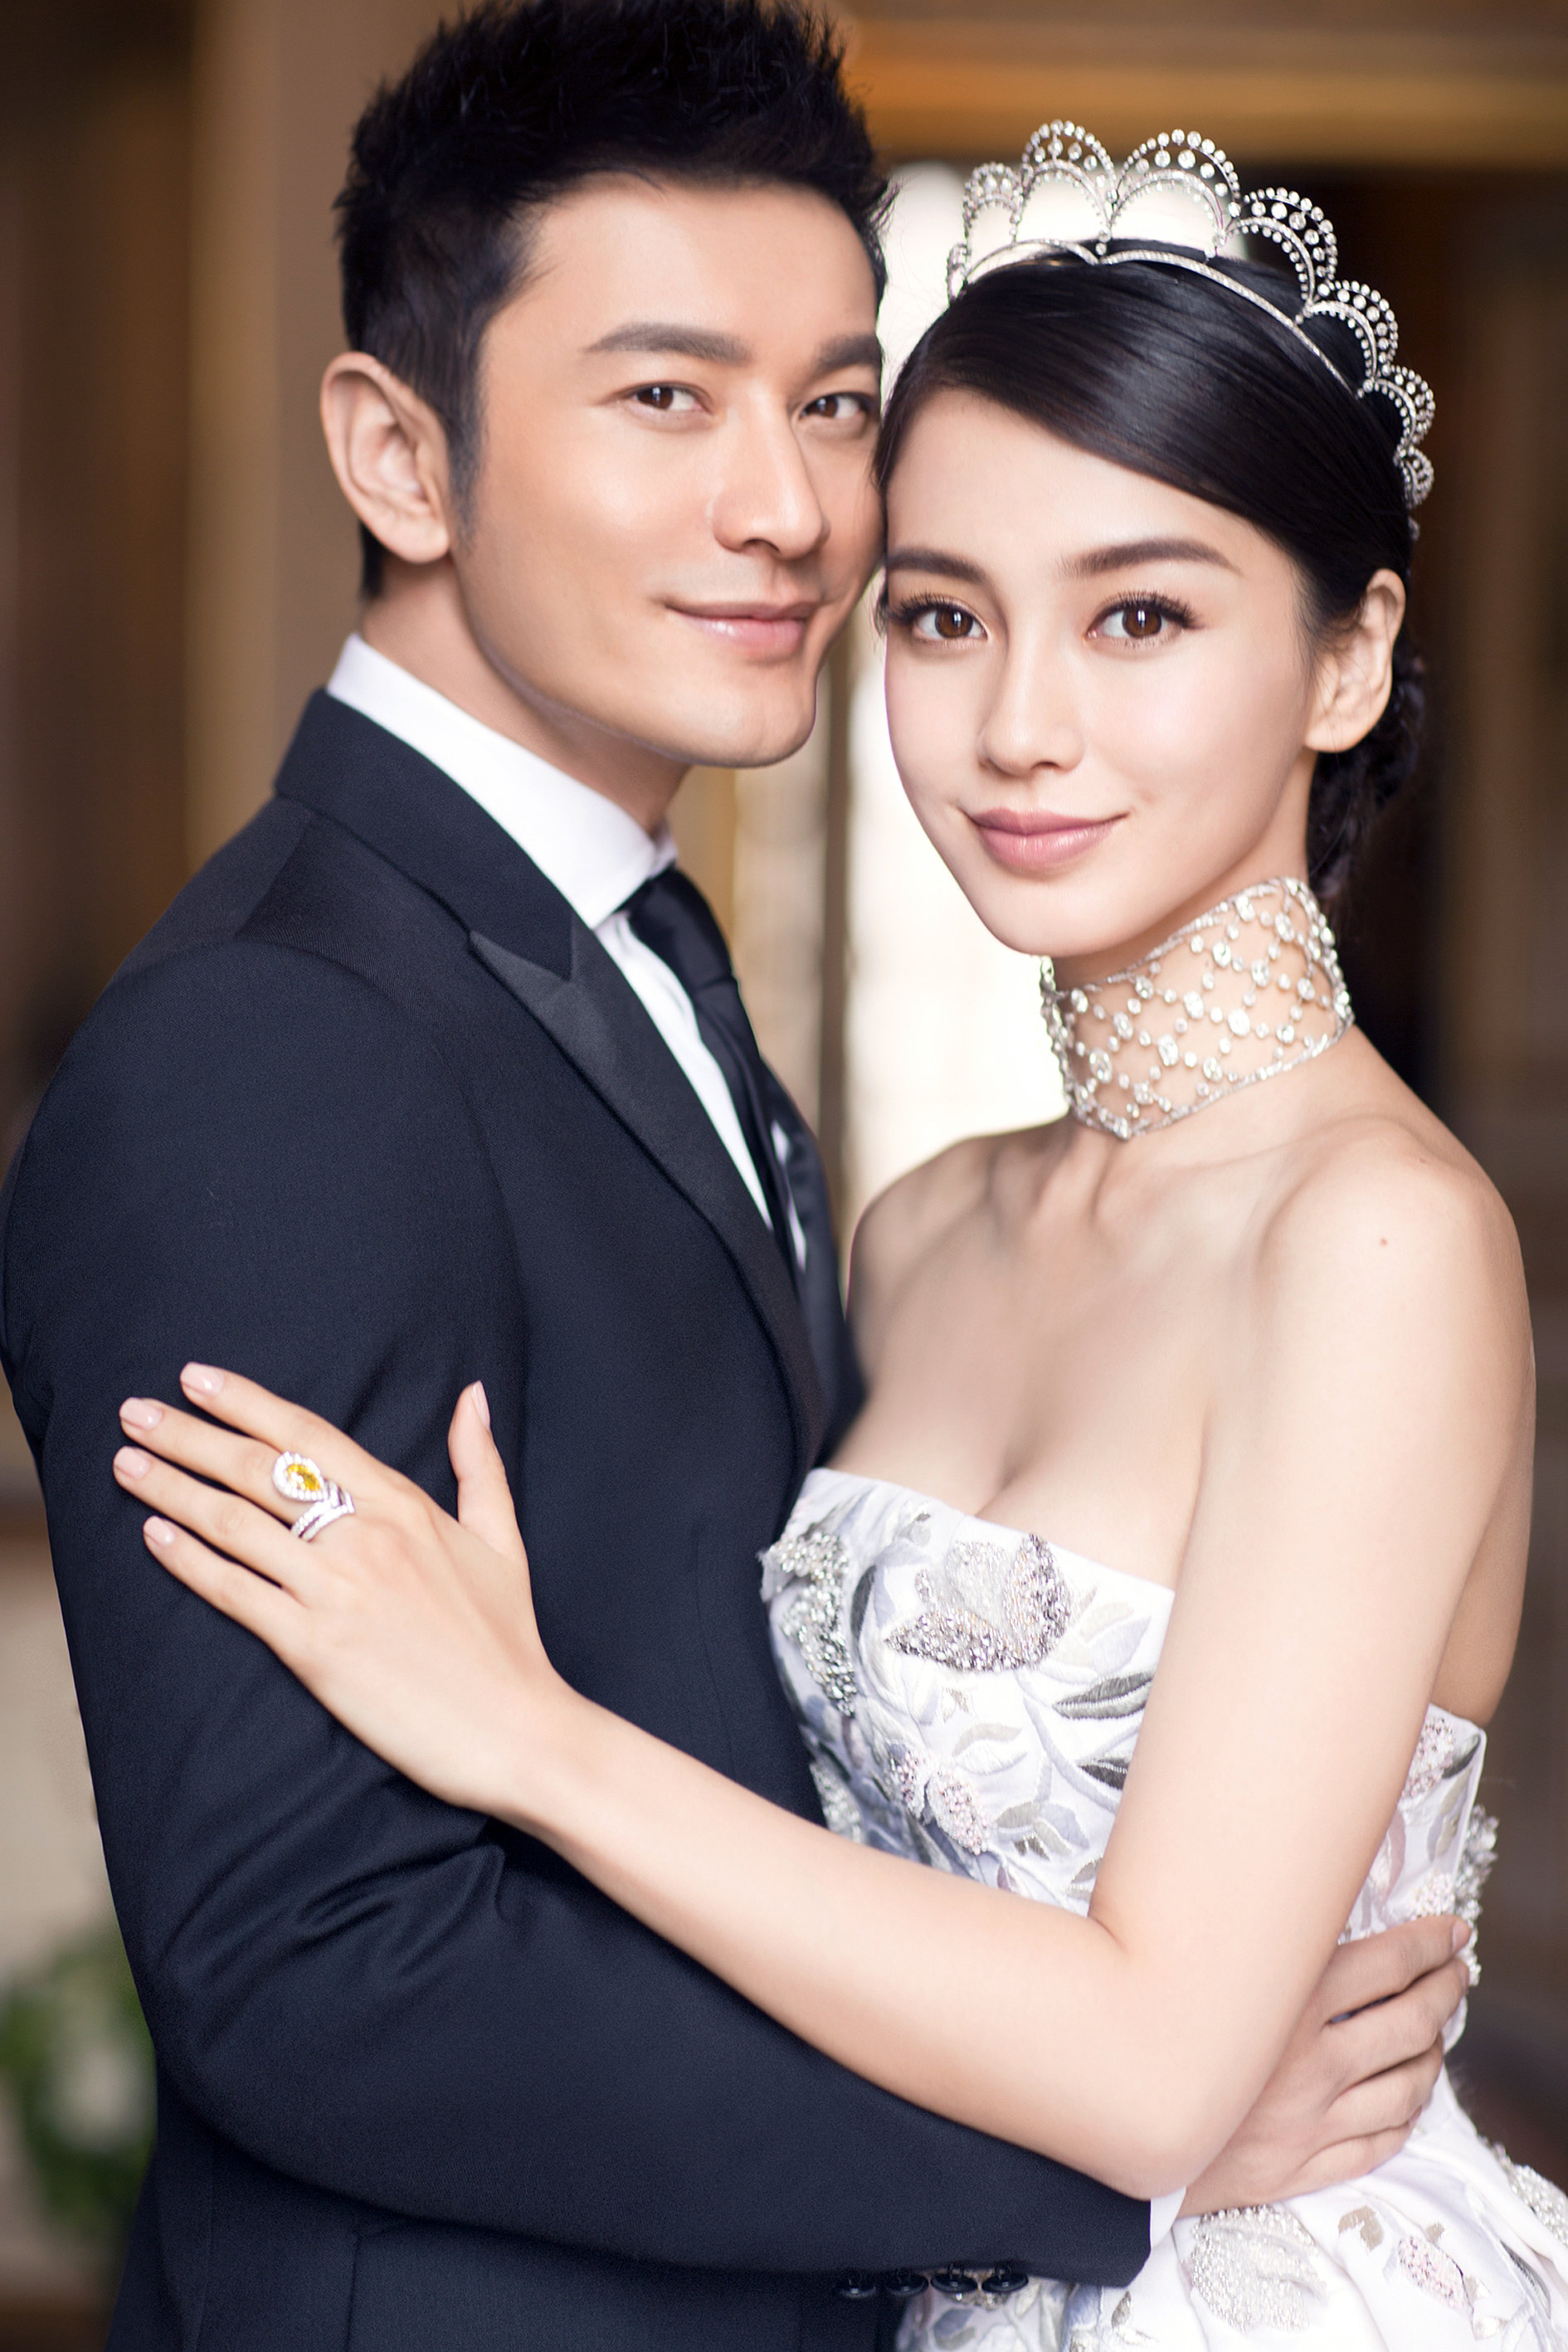 Huang Xiaoming and Angelababy wedding photo in Shanghai